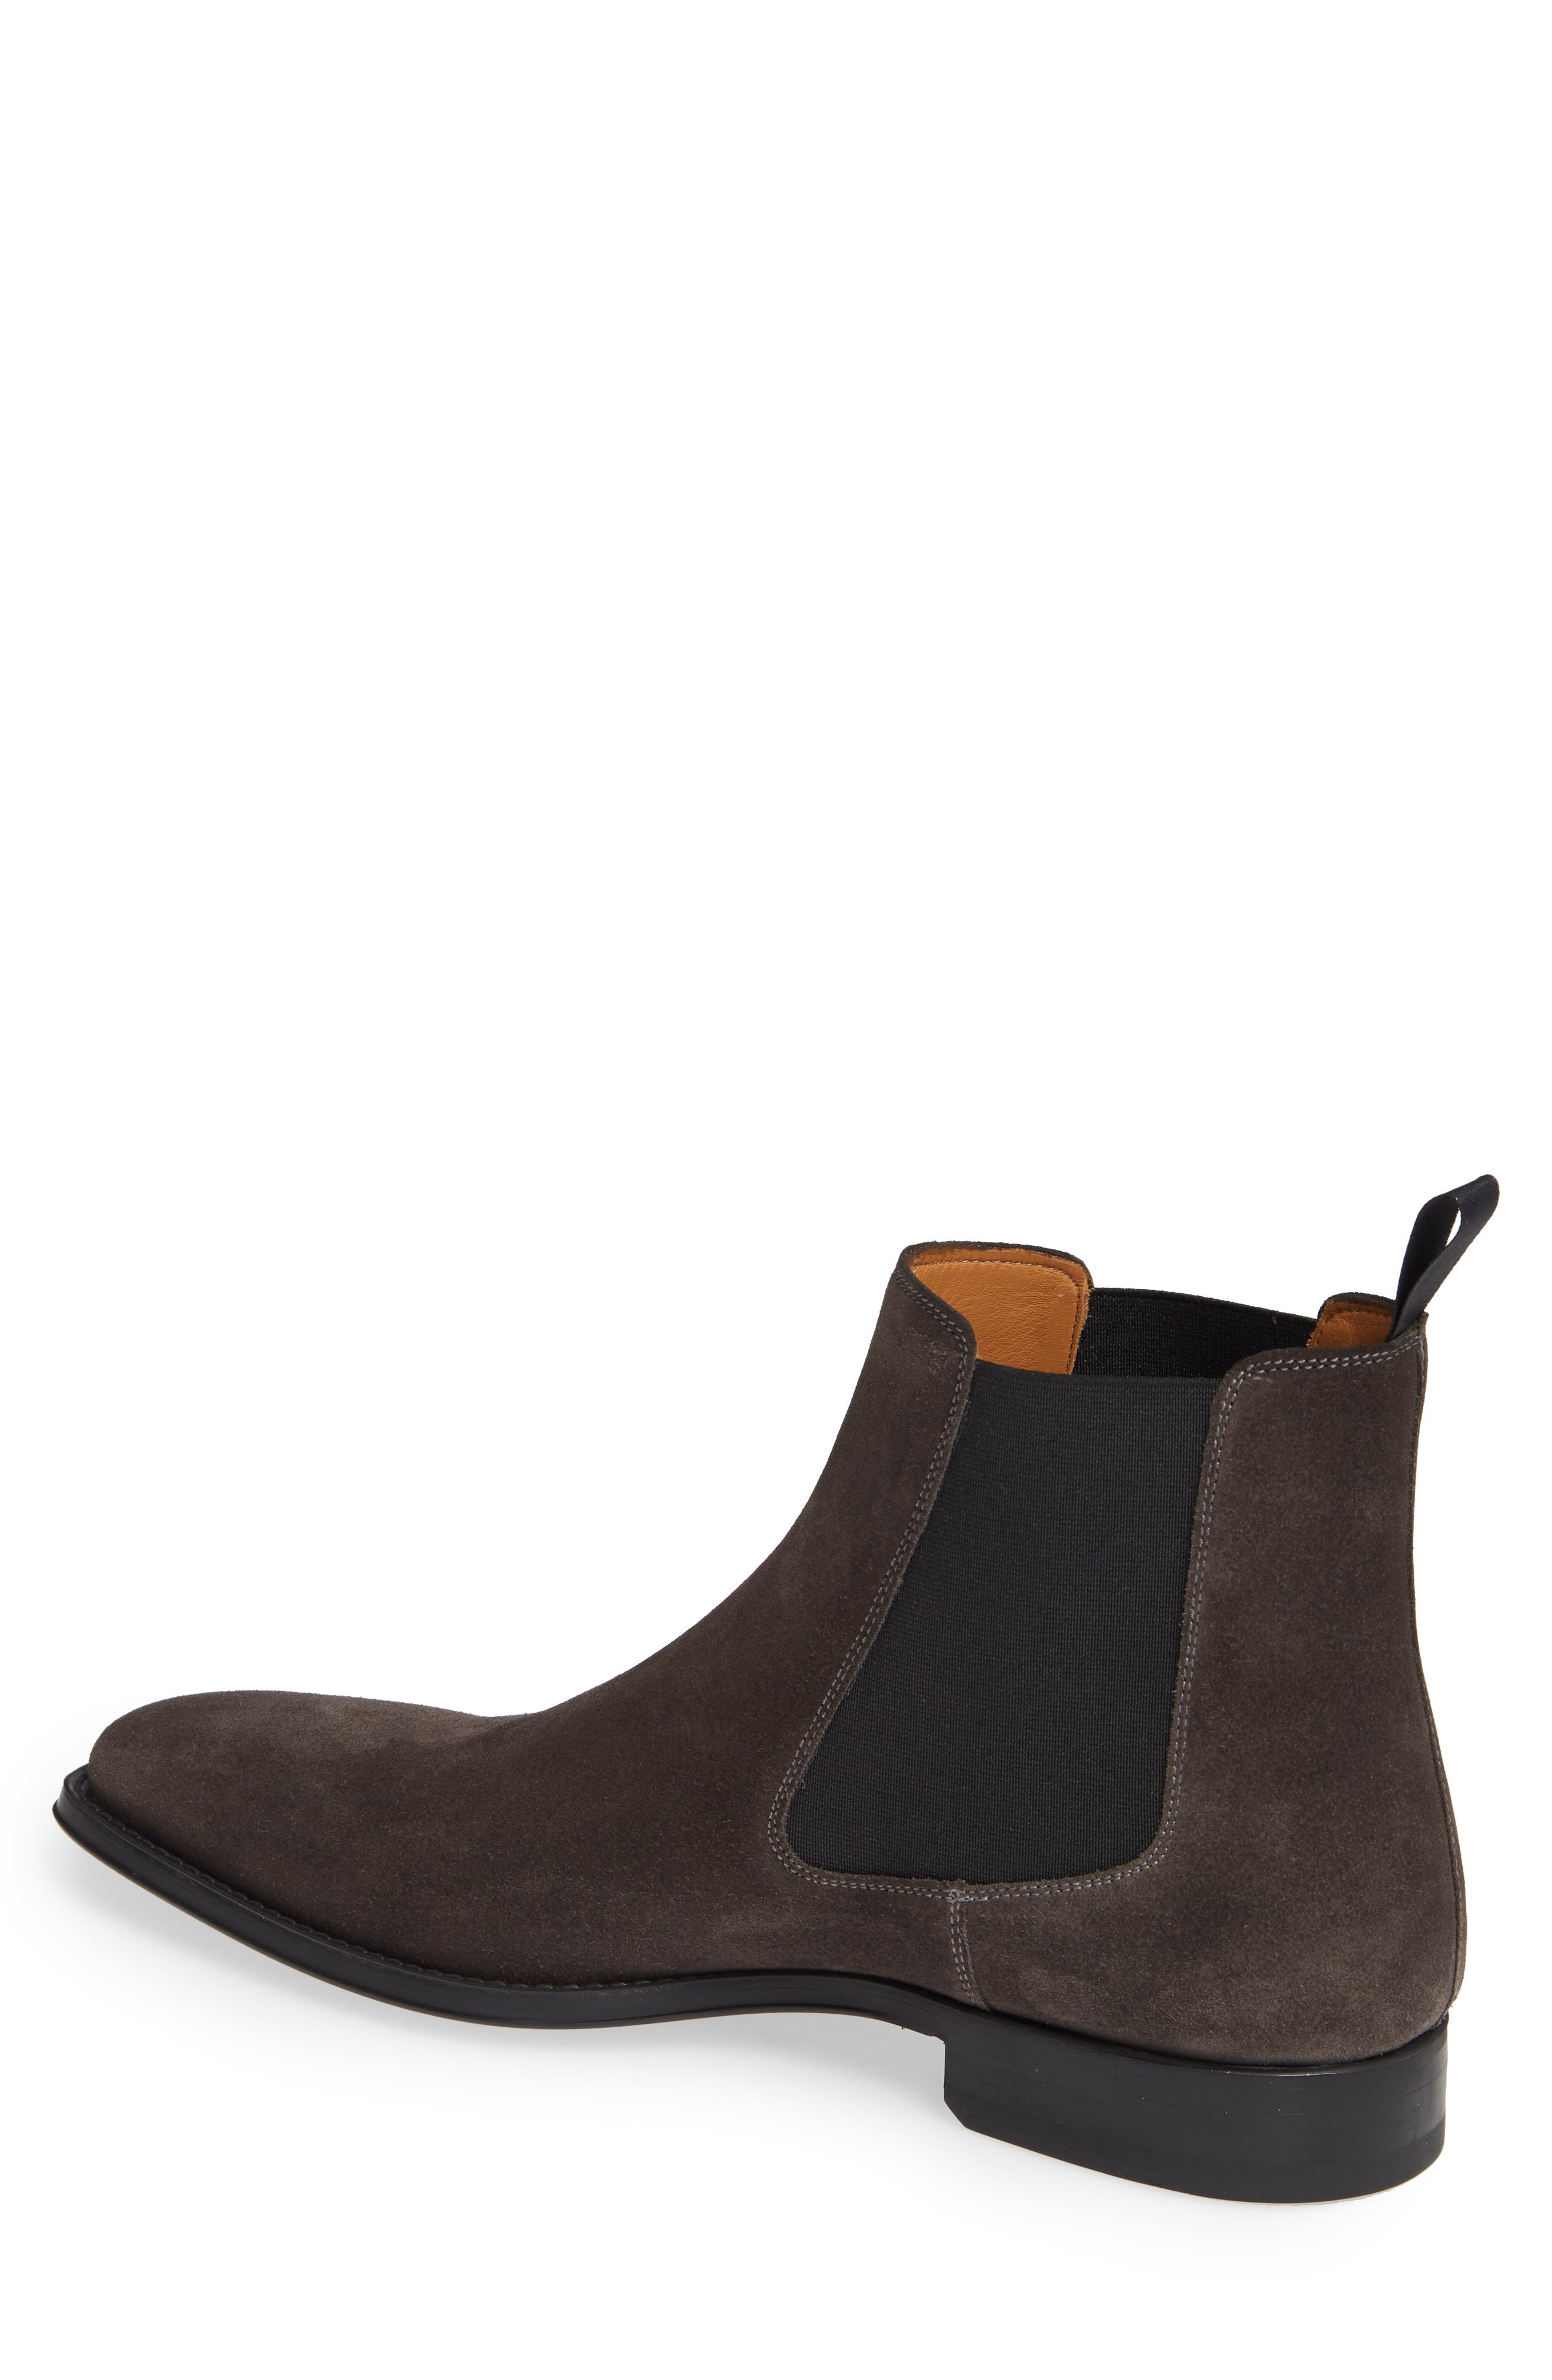 'Sean' Chelsea Boot,                             Alternate thumbnail 2, color,                             GREY LEATHER